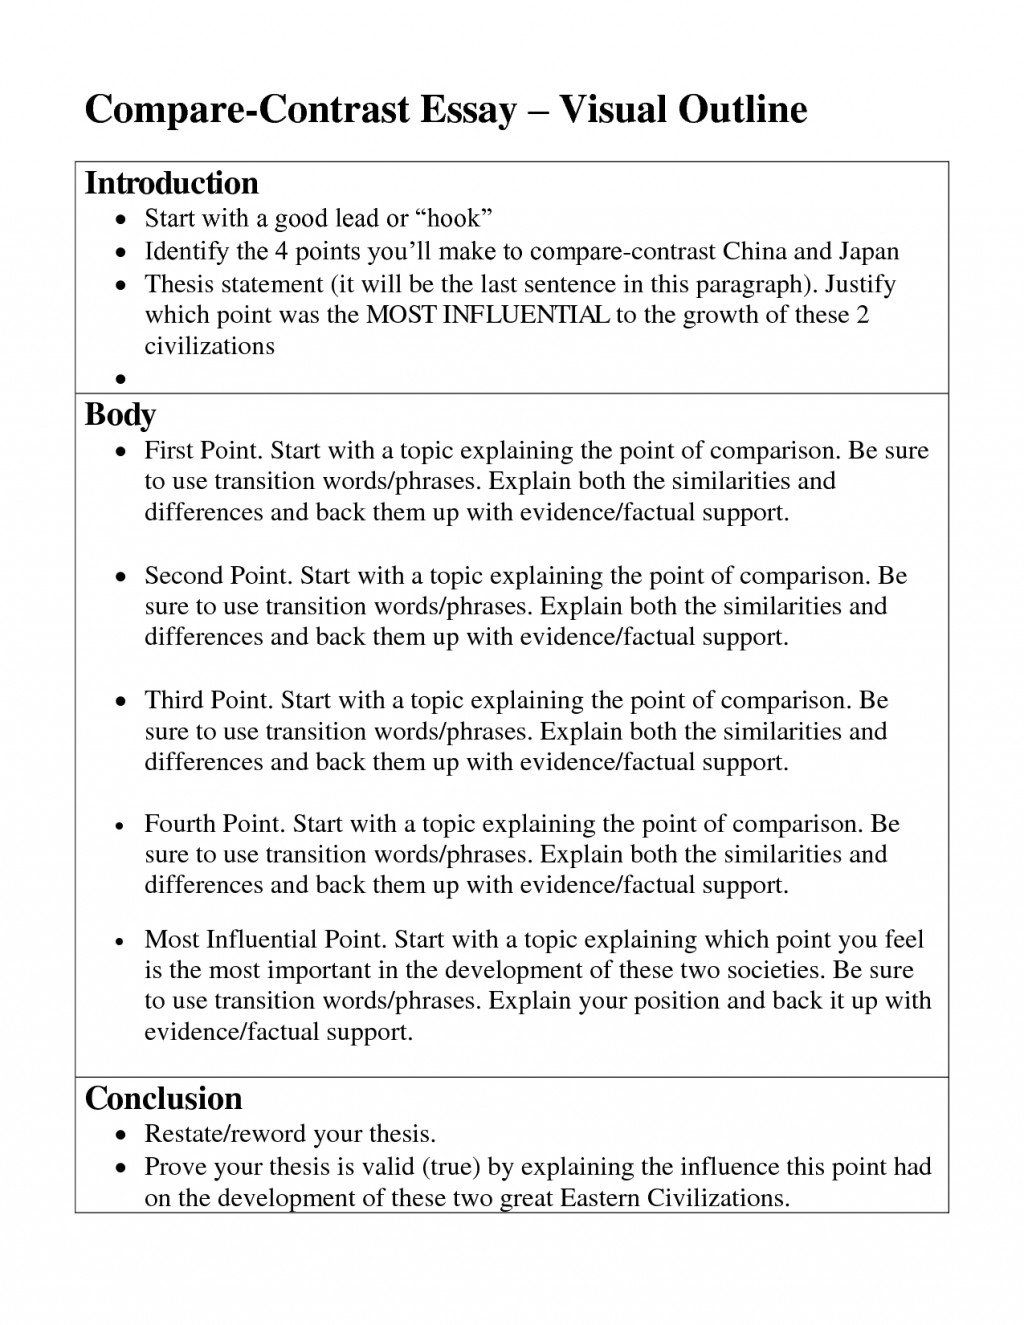 004 How To Write Compare And Contrast Essay Striking A Good Introduction Essays Large